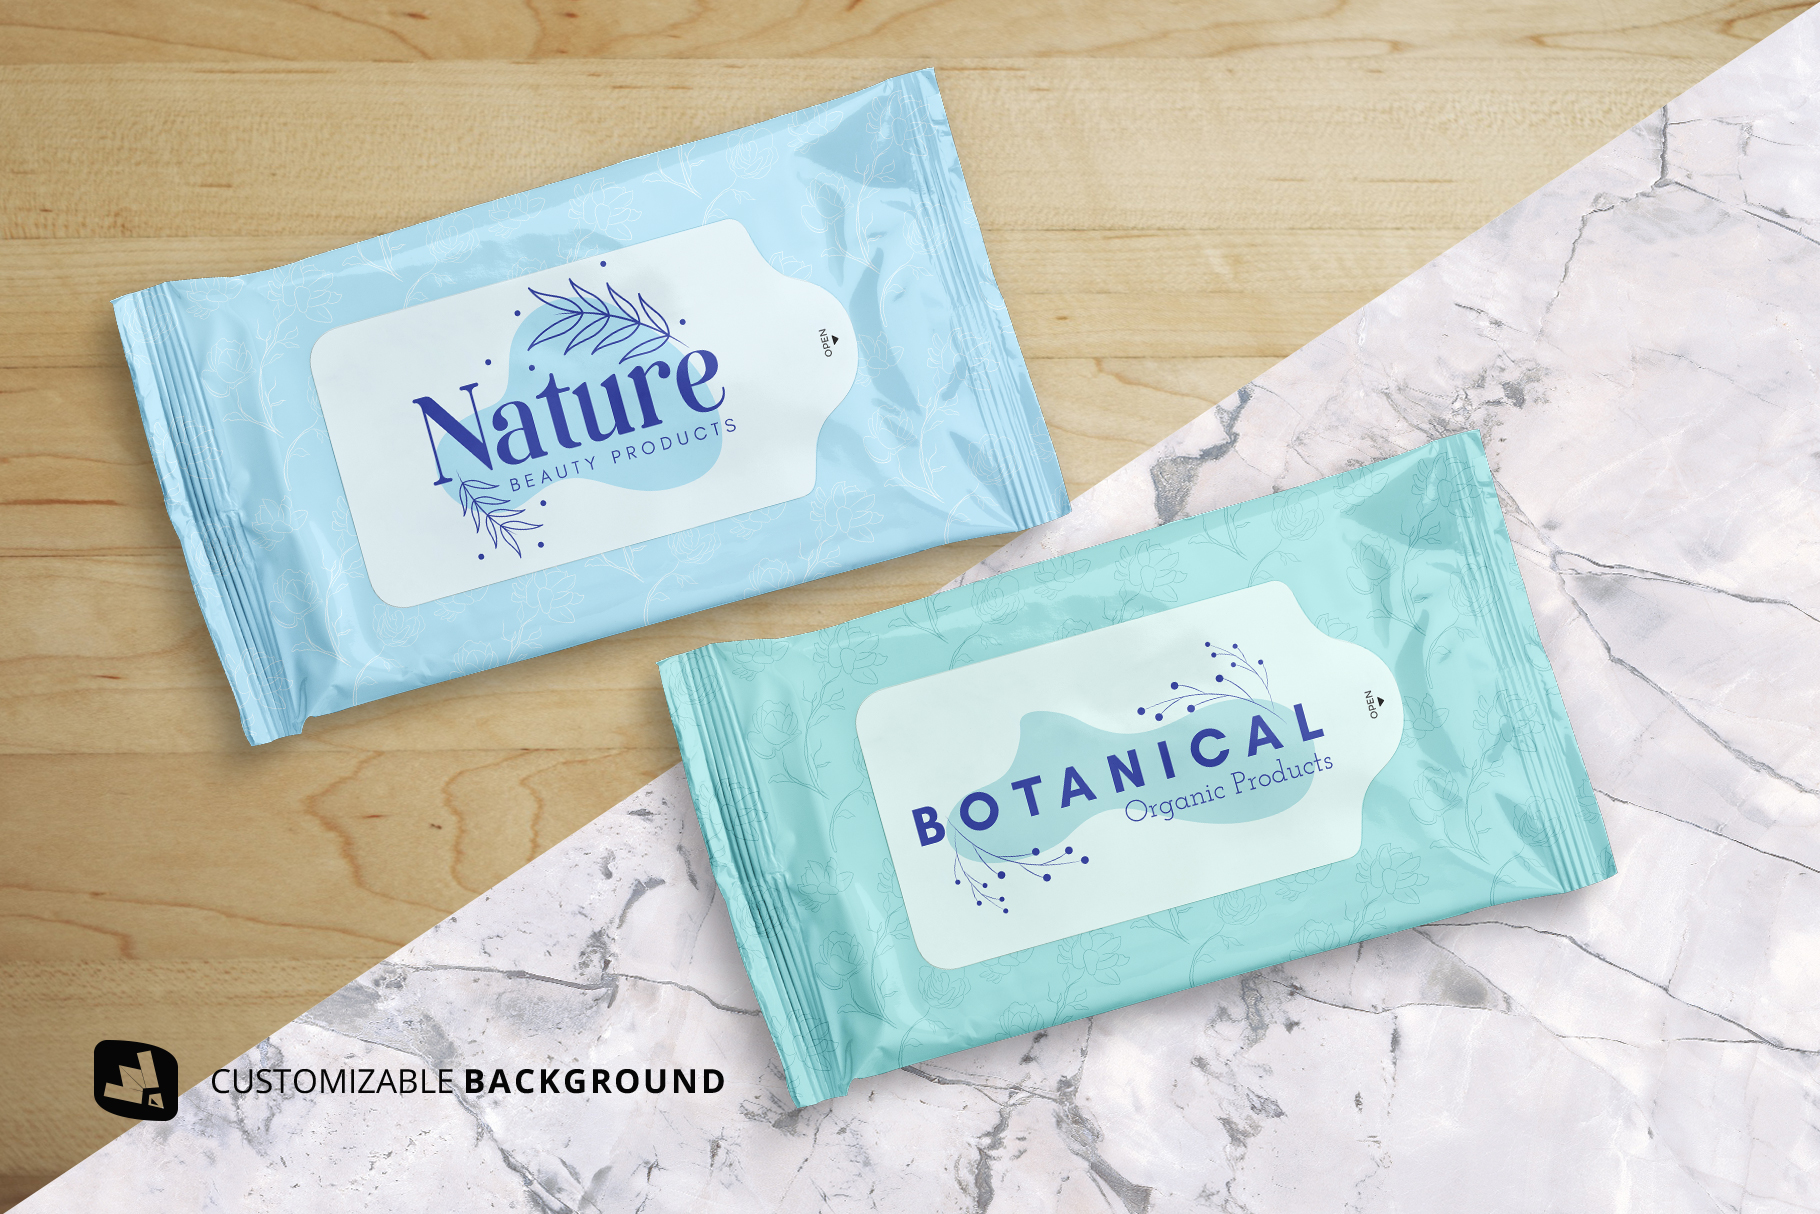 background options of the disposable wipes packaging mockup